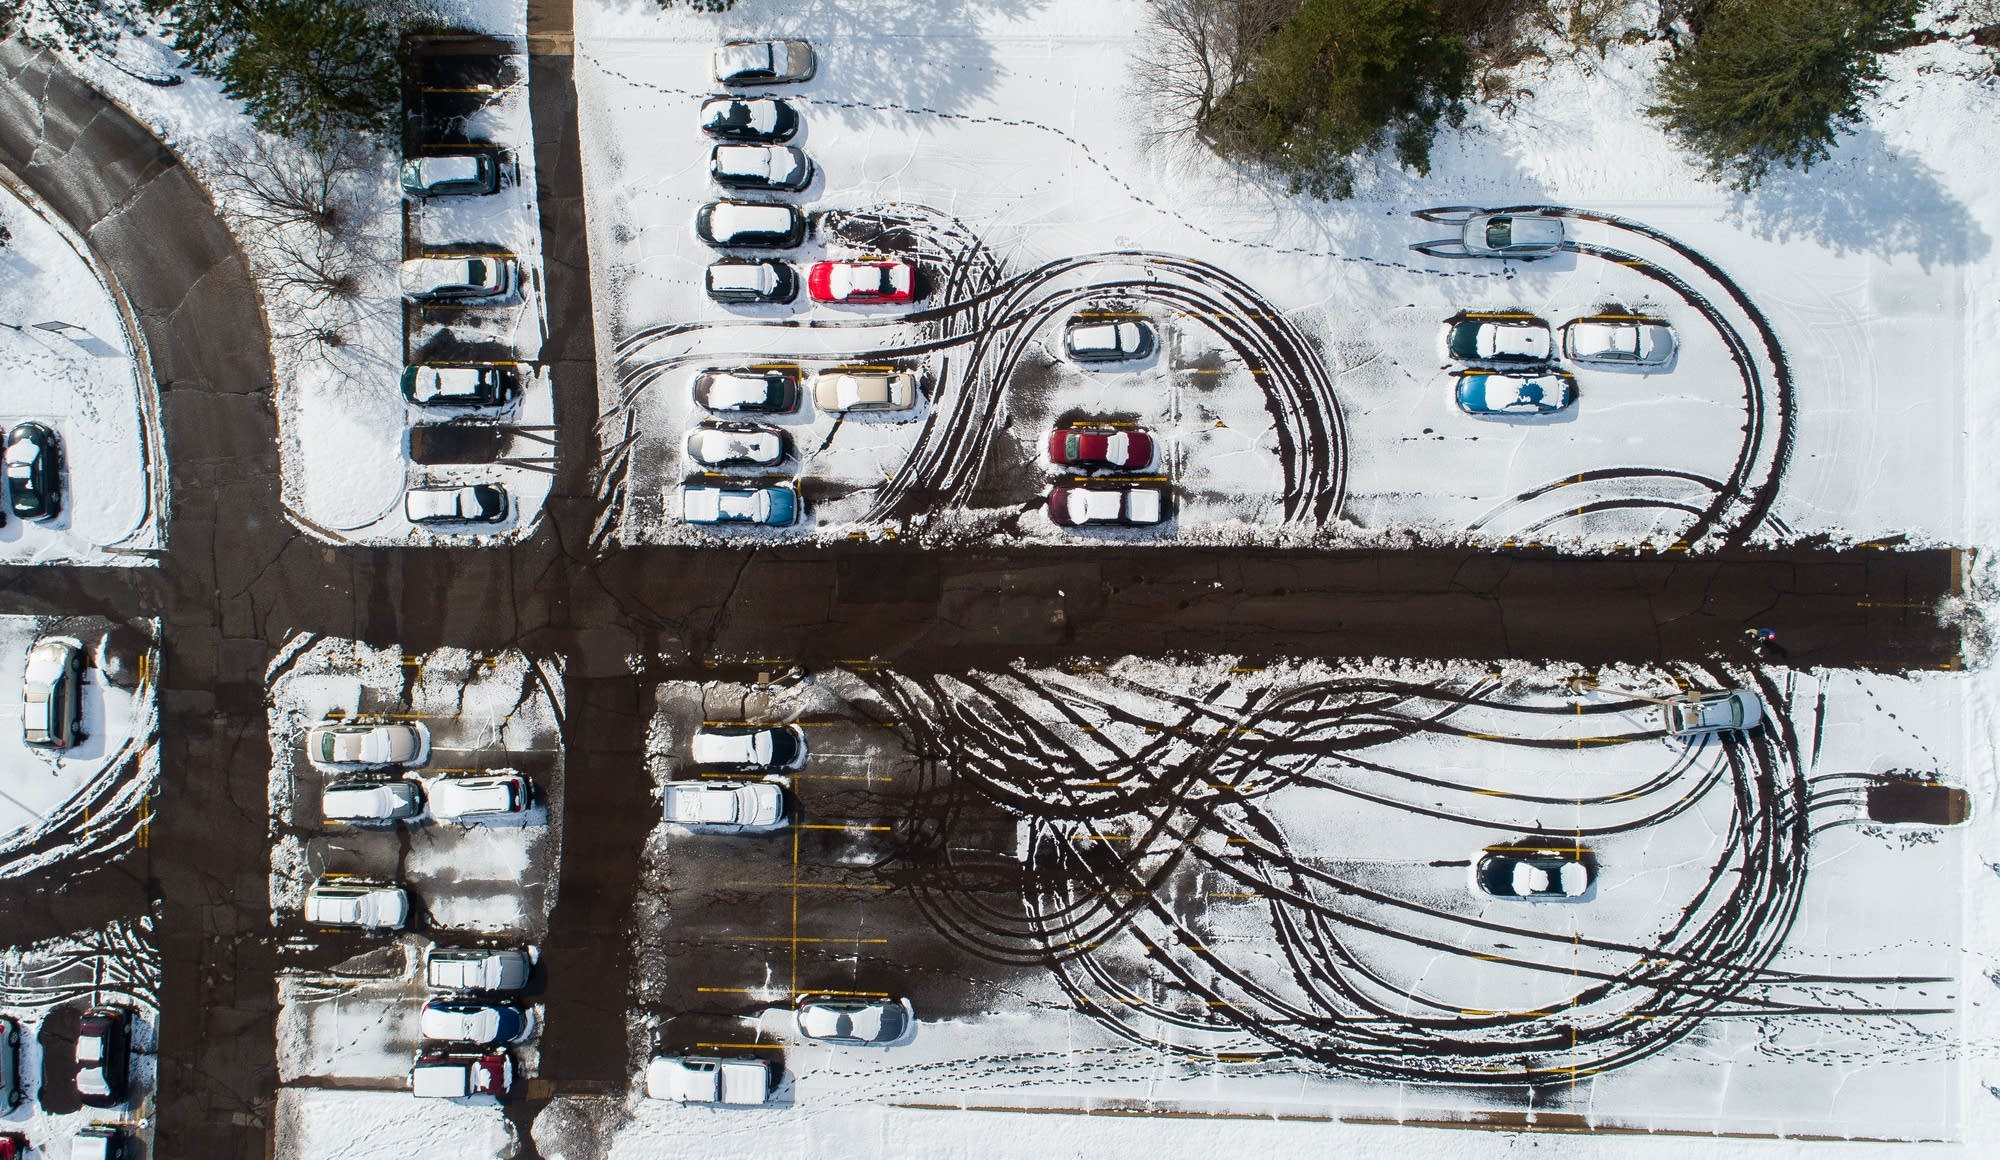 Vehicles, people leave patterns in a snowy parking lot.